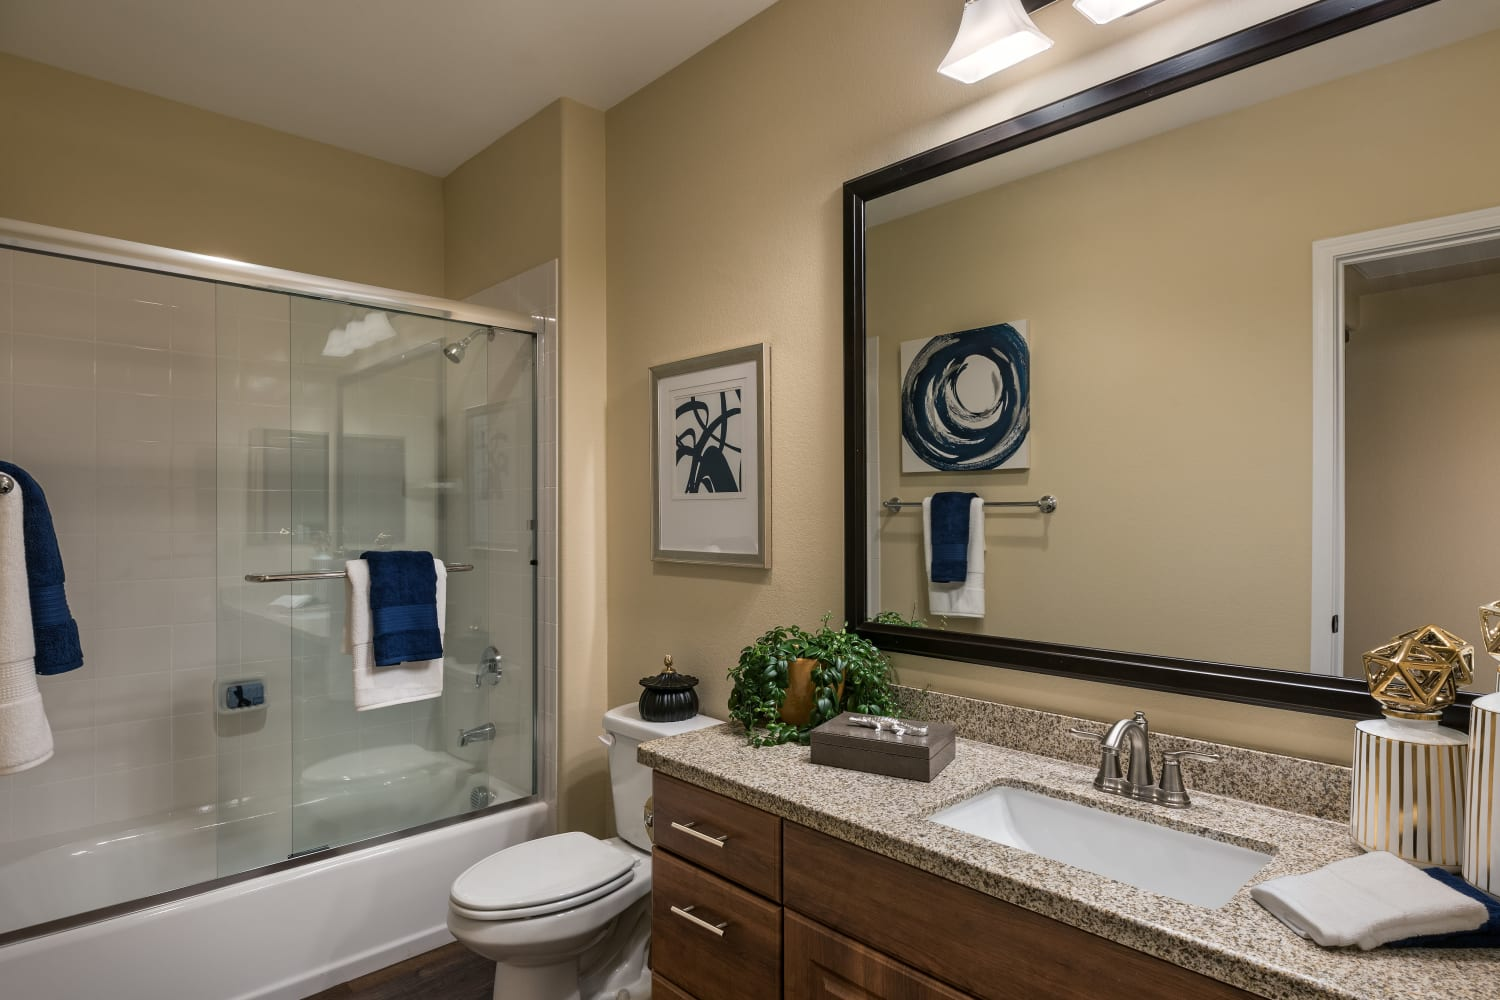 Two Bedroom Bathroom San Valencia in Chandler, Arizona